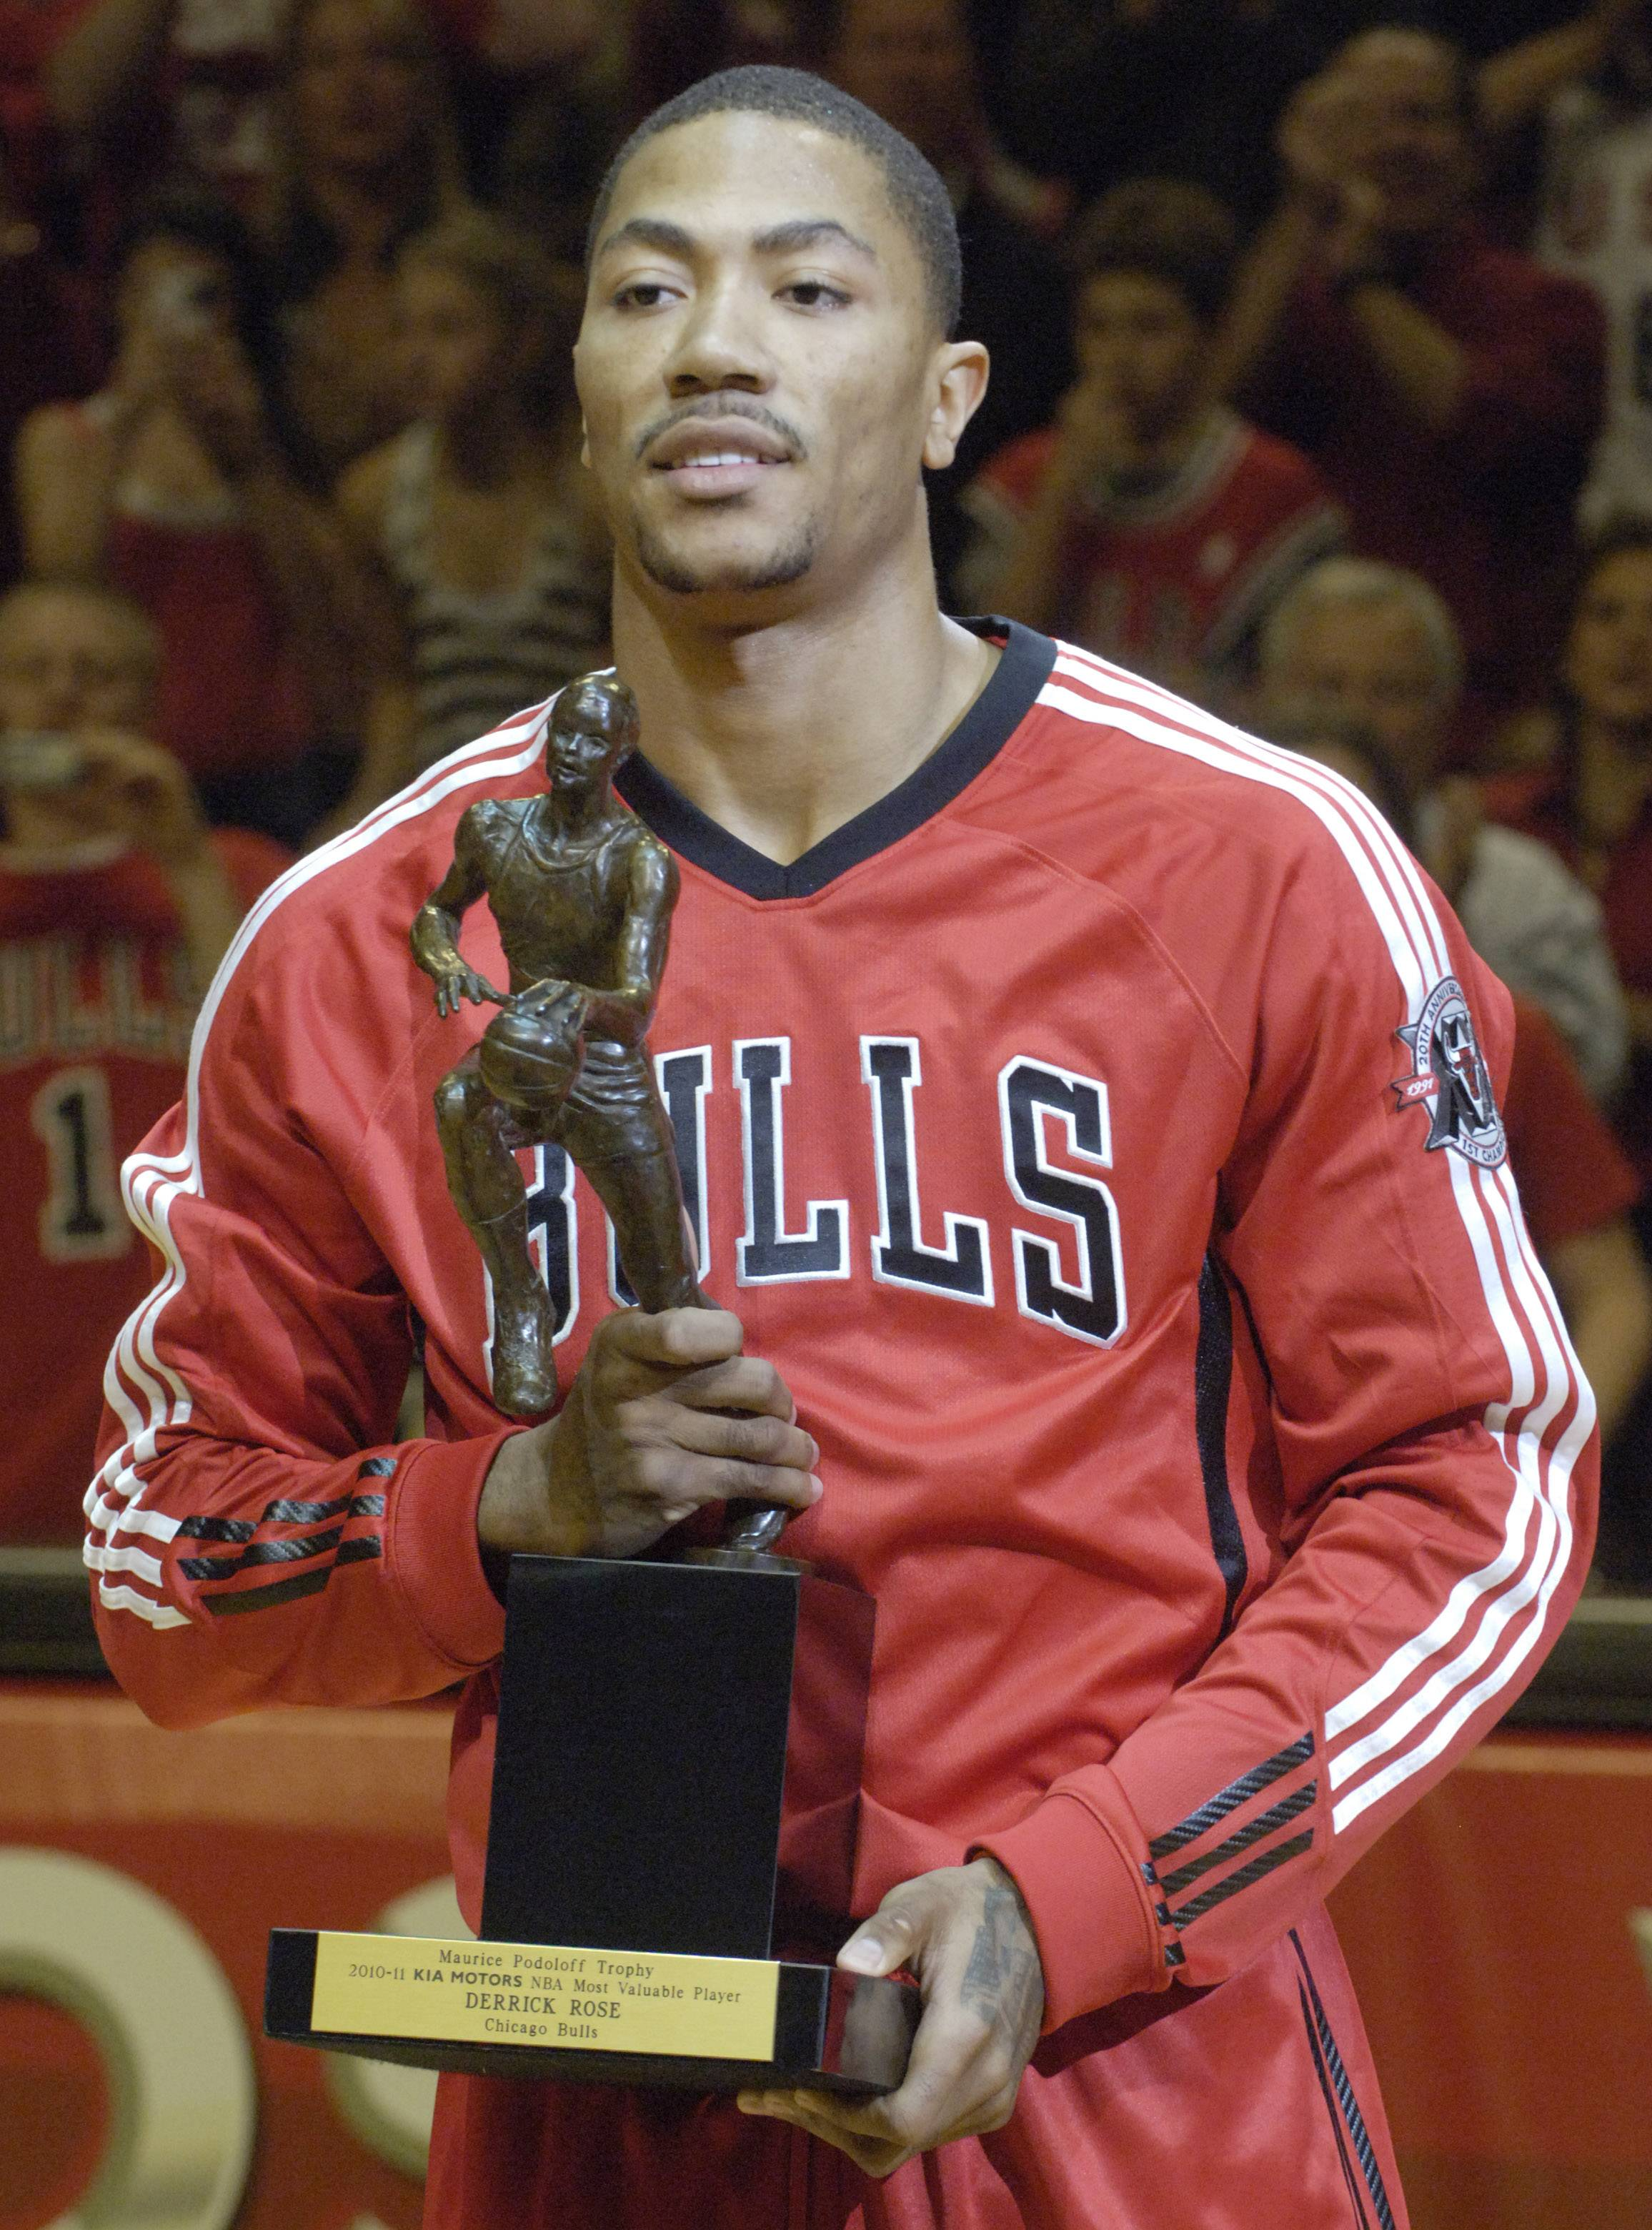 Since Derrick Rose earned the NBA MVP trophy three years ago, he has undergone two knee surgeries. Mike North calls Rose's $17 million a year contract an albatross around the Bulls' necks.